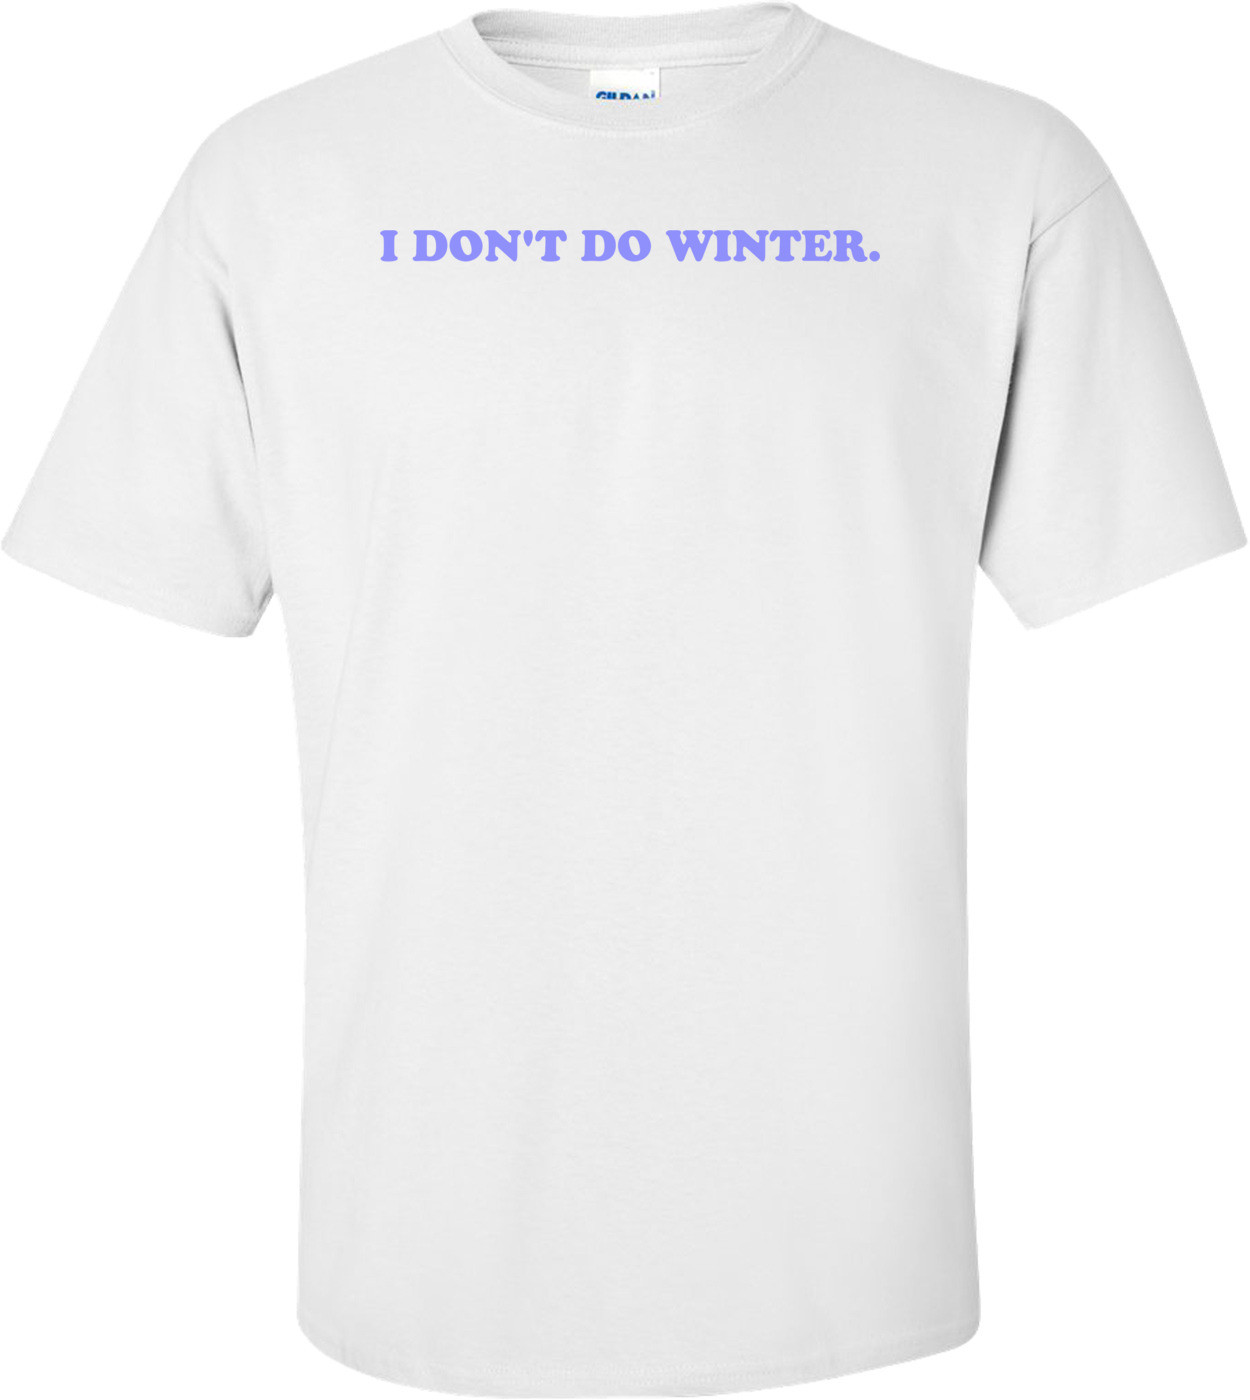 I DON'T DO WINTER. Shirt